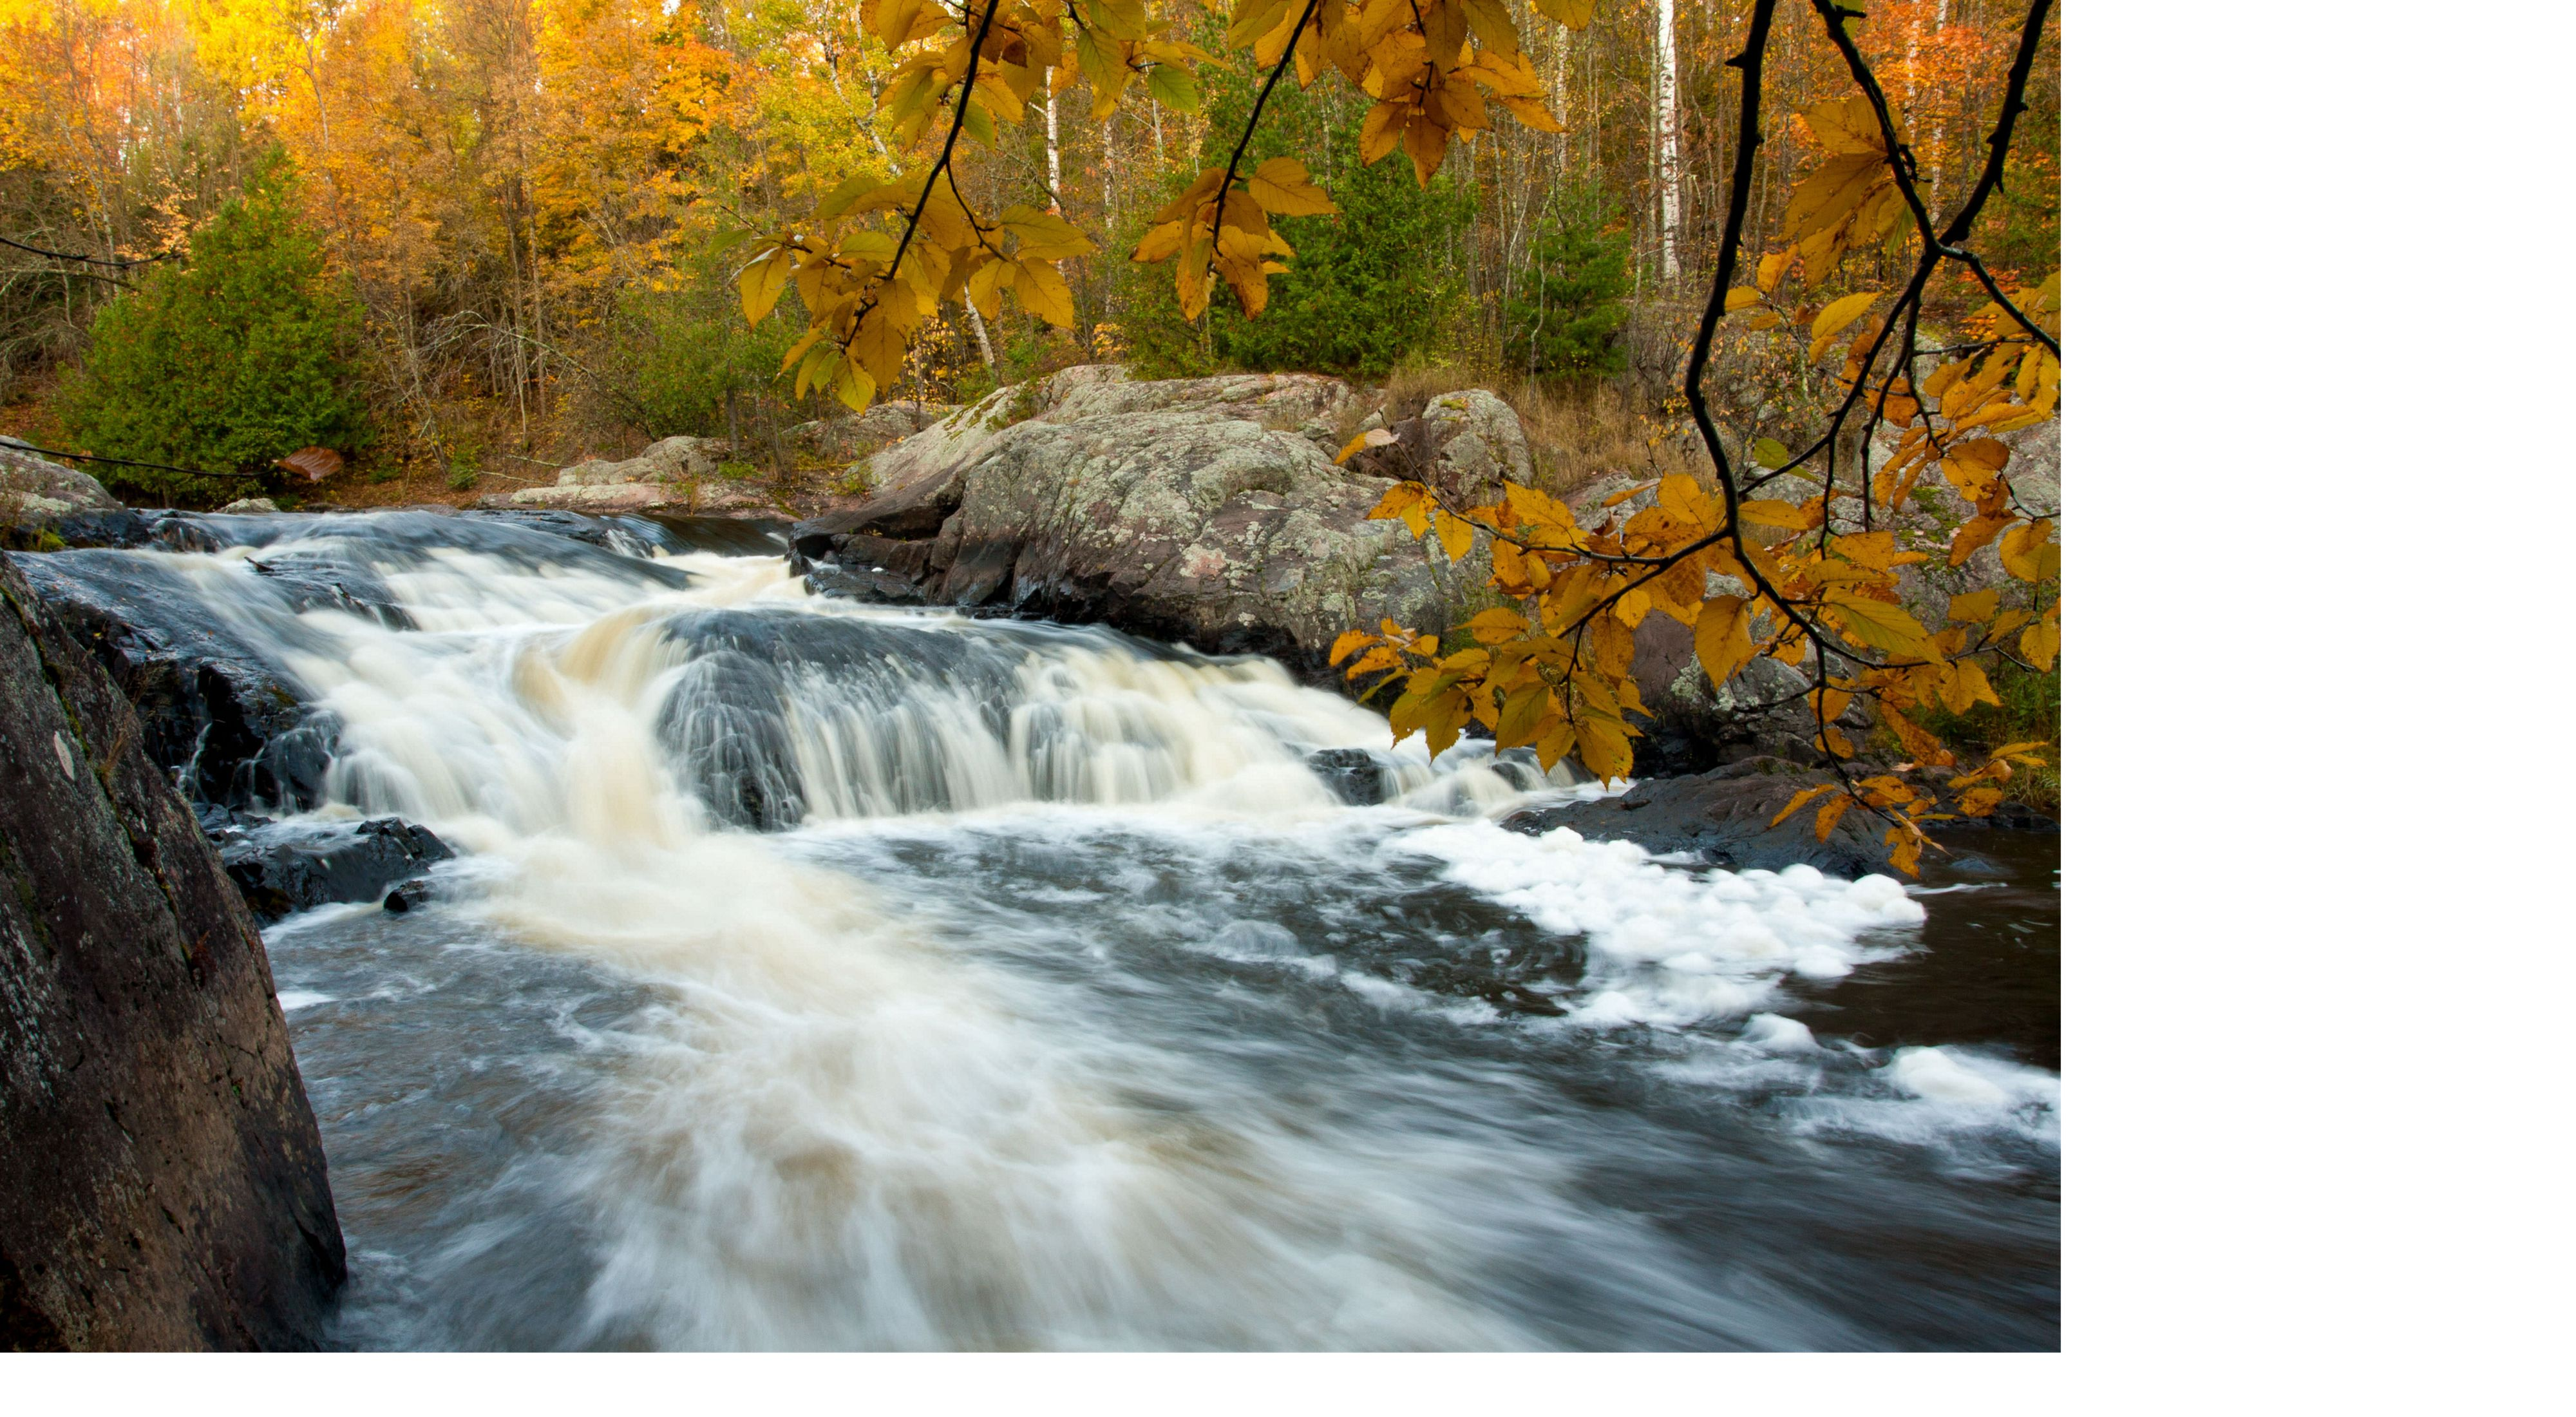 Water rushes over large boulders in a river lined by evergreens and trees yellow with fall color